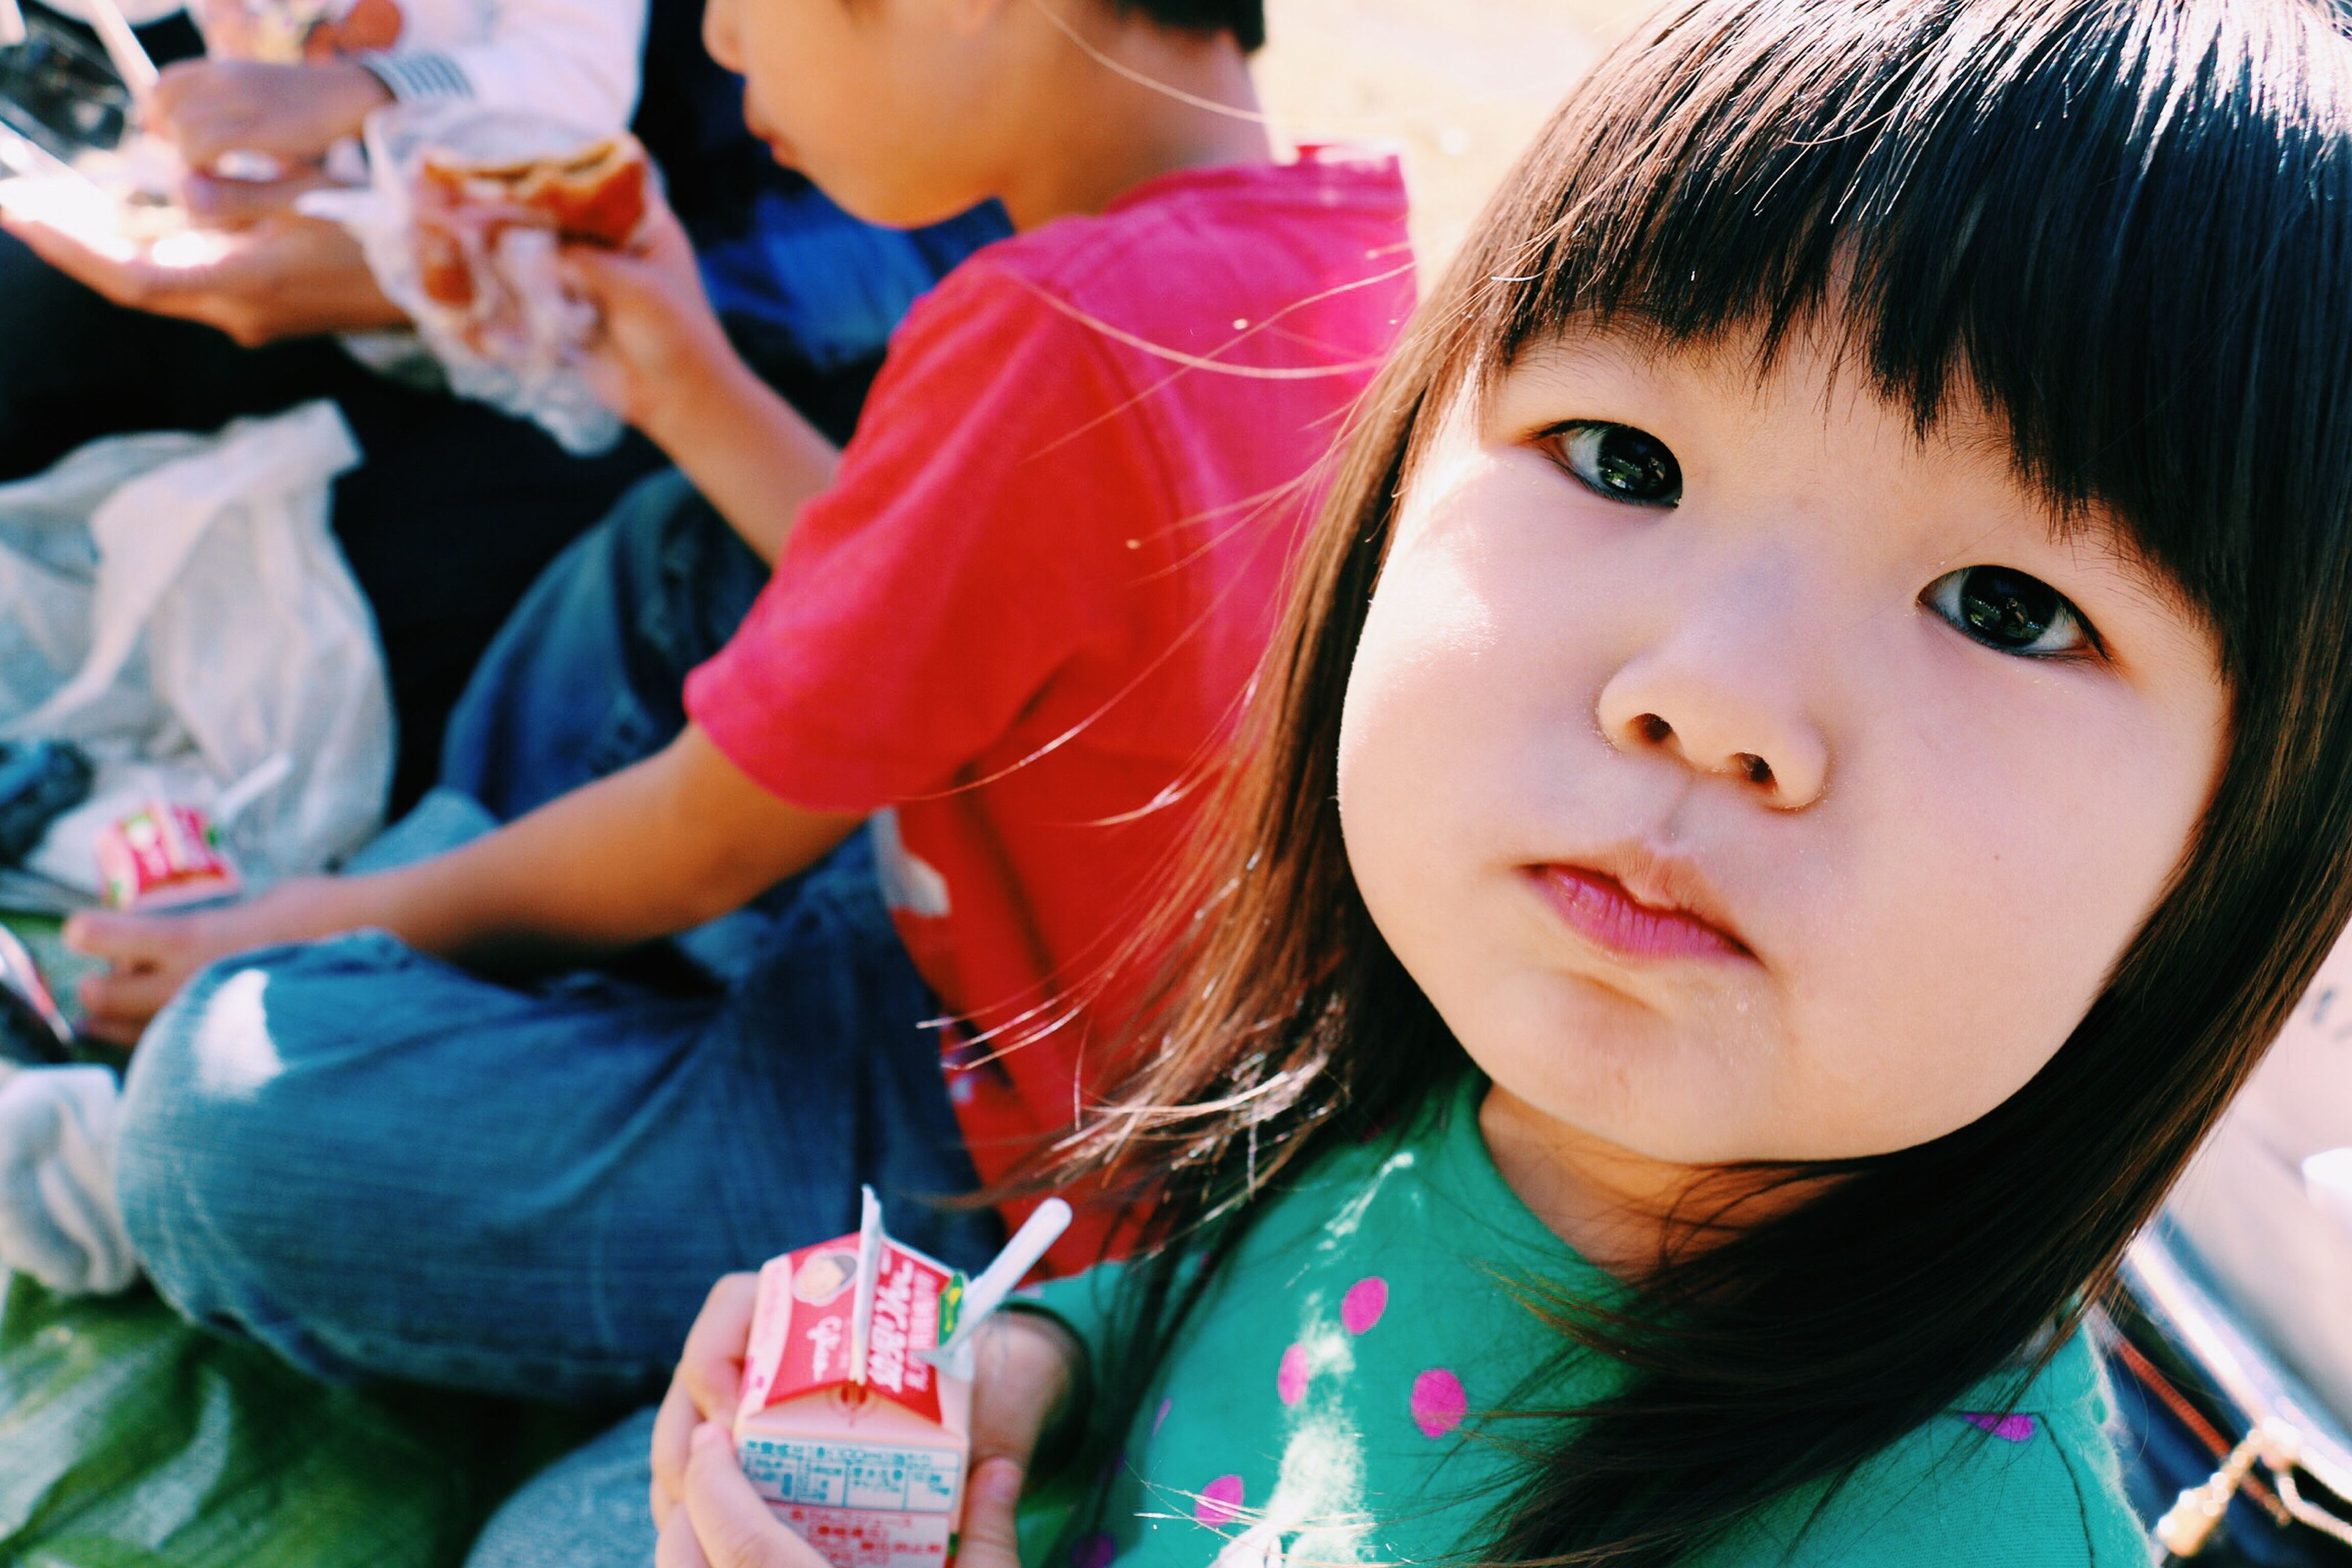 childhood, person, elementary age, girls, innocence, cute, headshot, looking at camera, lifestyles, portrait, smiling, leisure activity, boys, casual clothing, focus on foreground, close-up, head and shoulders, happiness